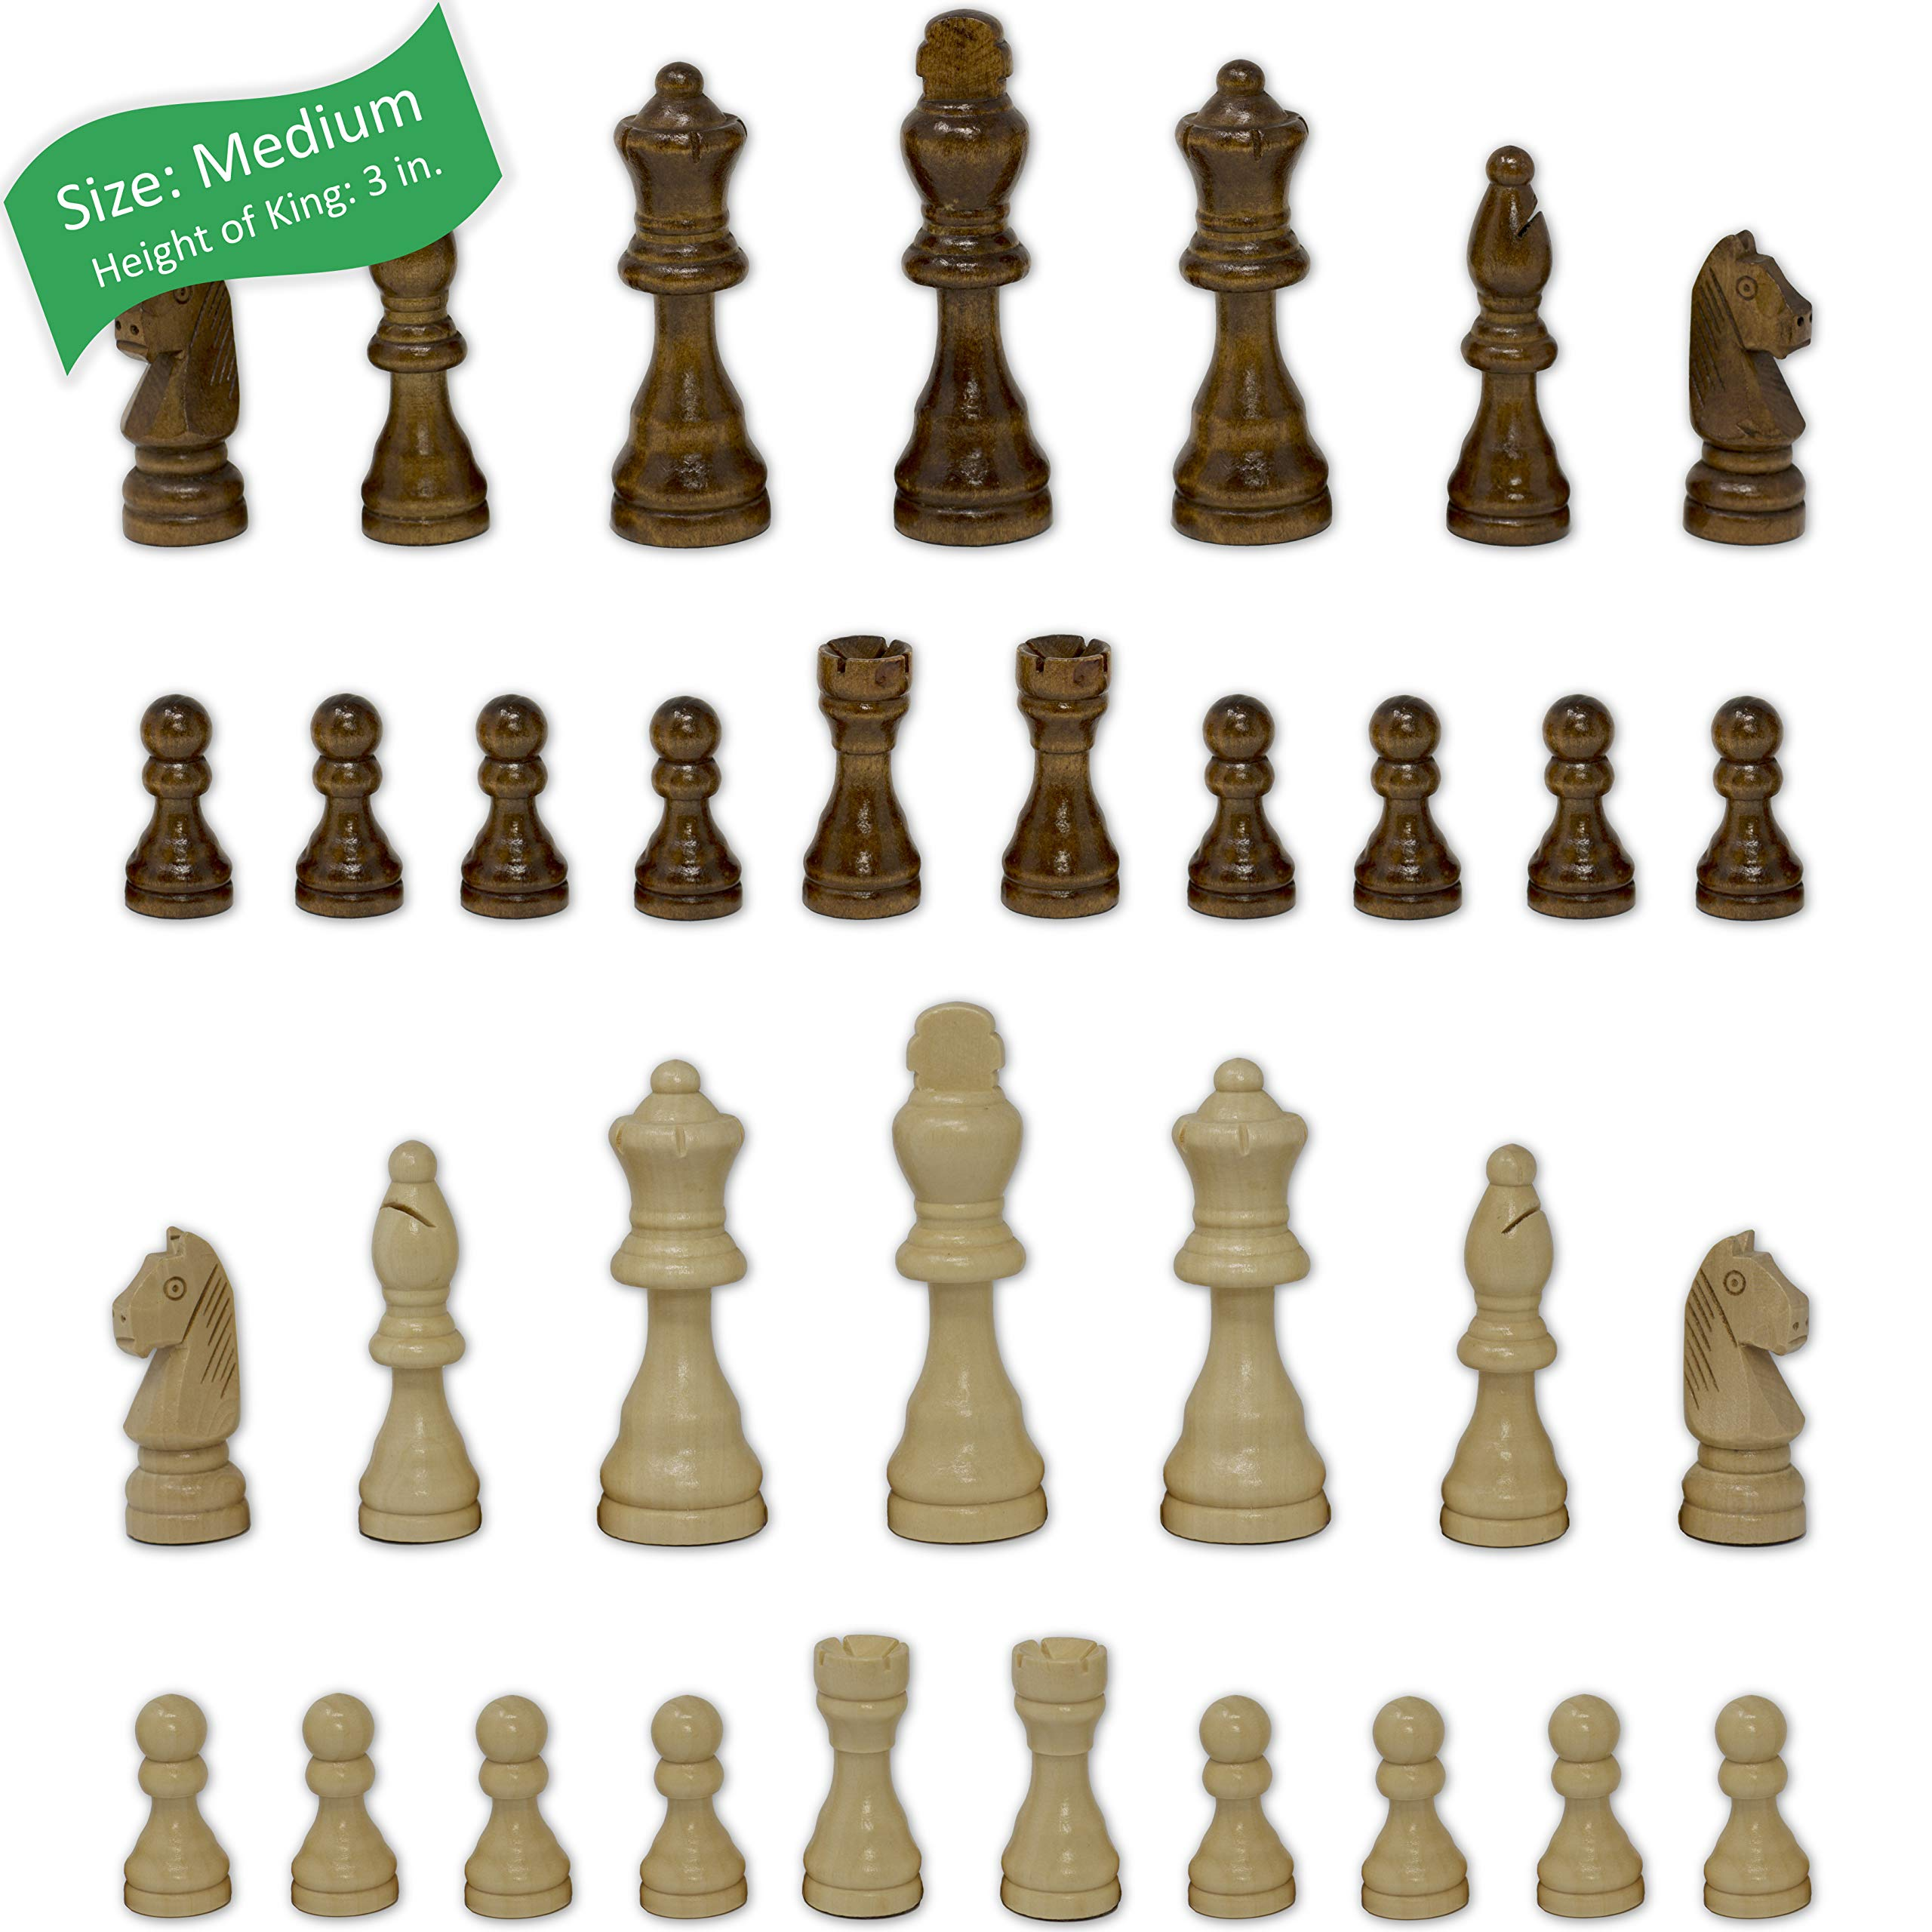 Staunton Chess Pieces by GrowUpSmart with Extra Queens | Size: Medium - King Height: 3 inches | Wood by GrowUpSmart